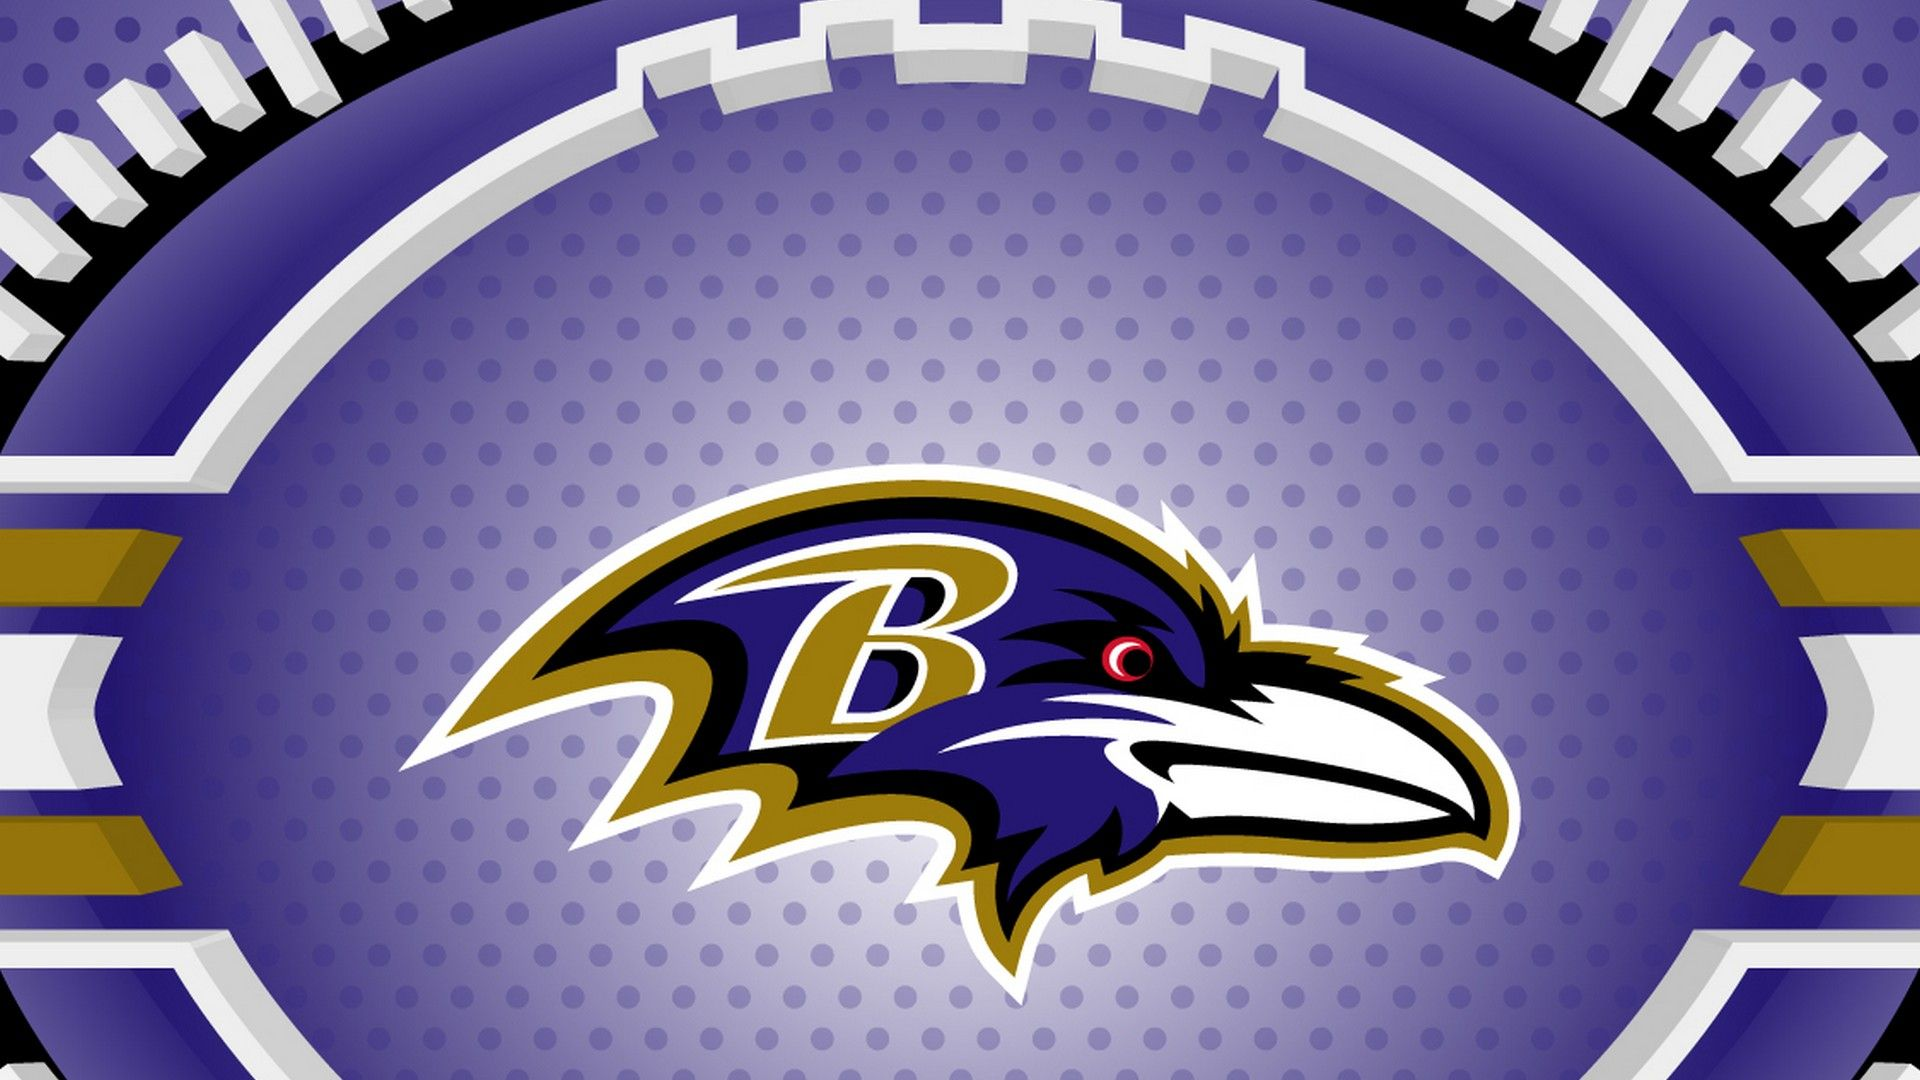 Baltimore Ravens Wallpaper For Mac Backgrounds Wallpapers Mac 1920x1080